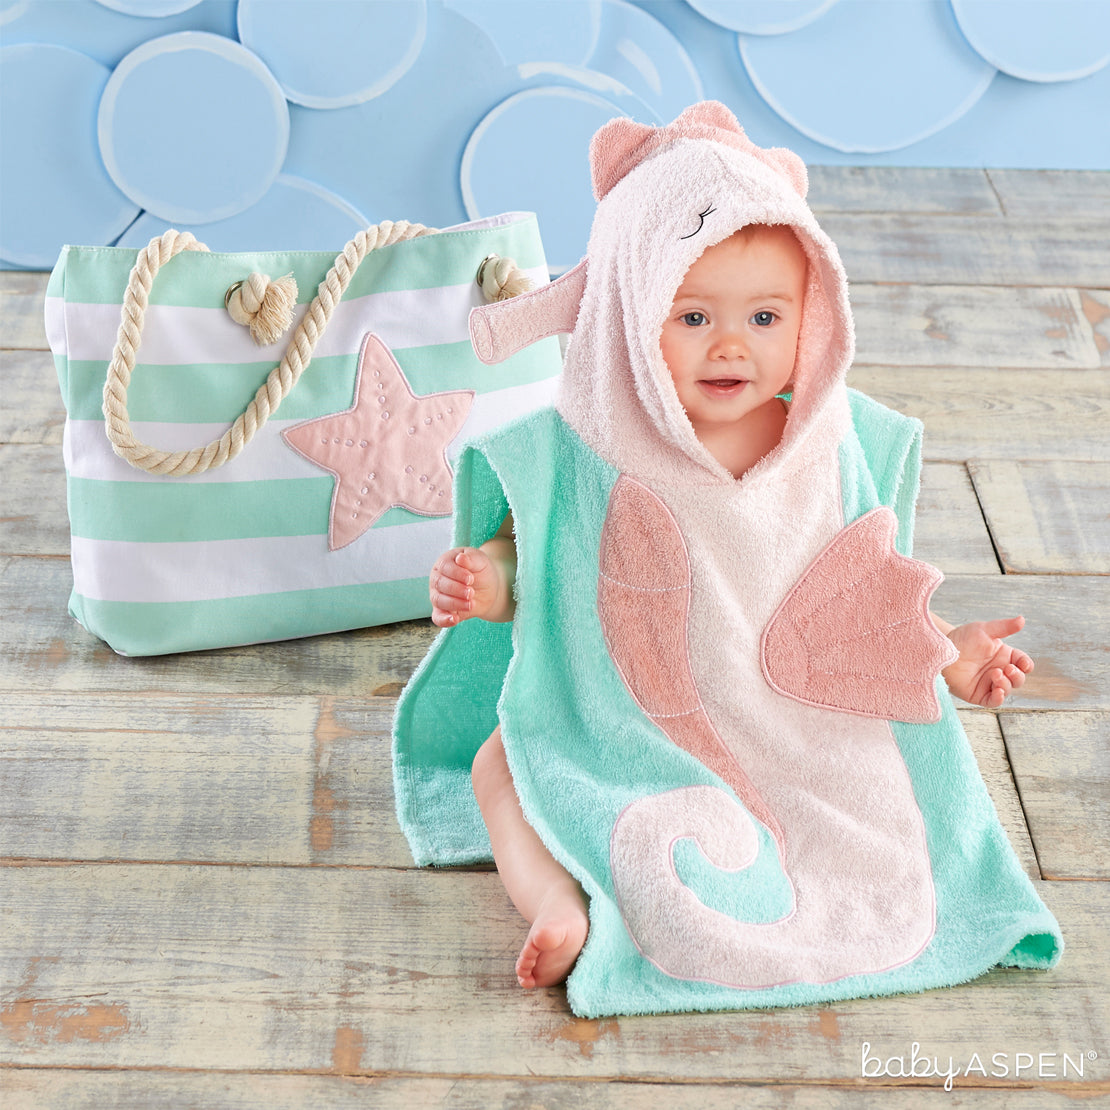 Seahorse 4-Piece Beach Gift Set with Canvas Tote for Mom | Brilliant Beach Baby Gifts + A Giveaway | Baby Aspen